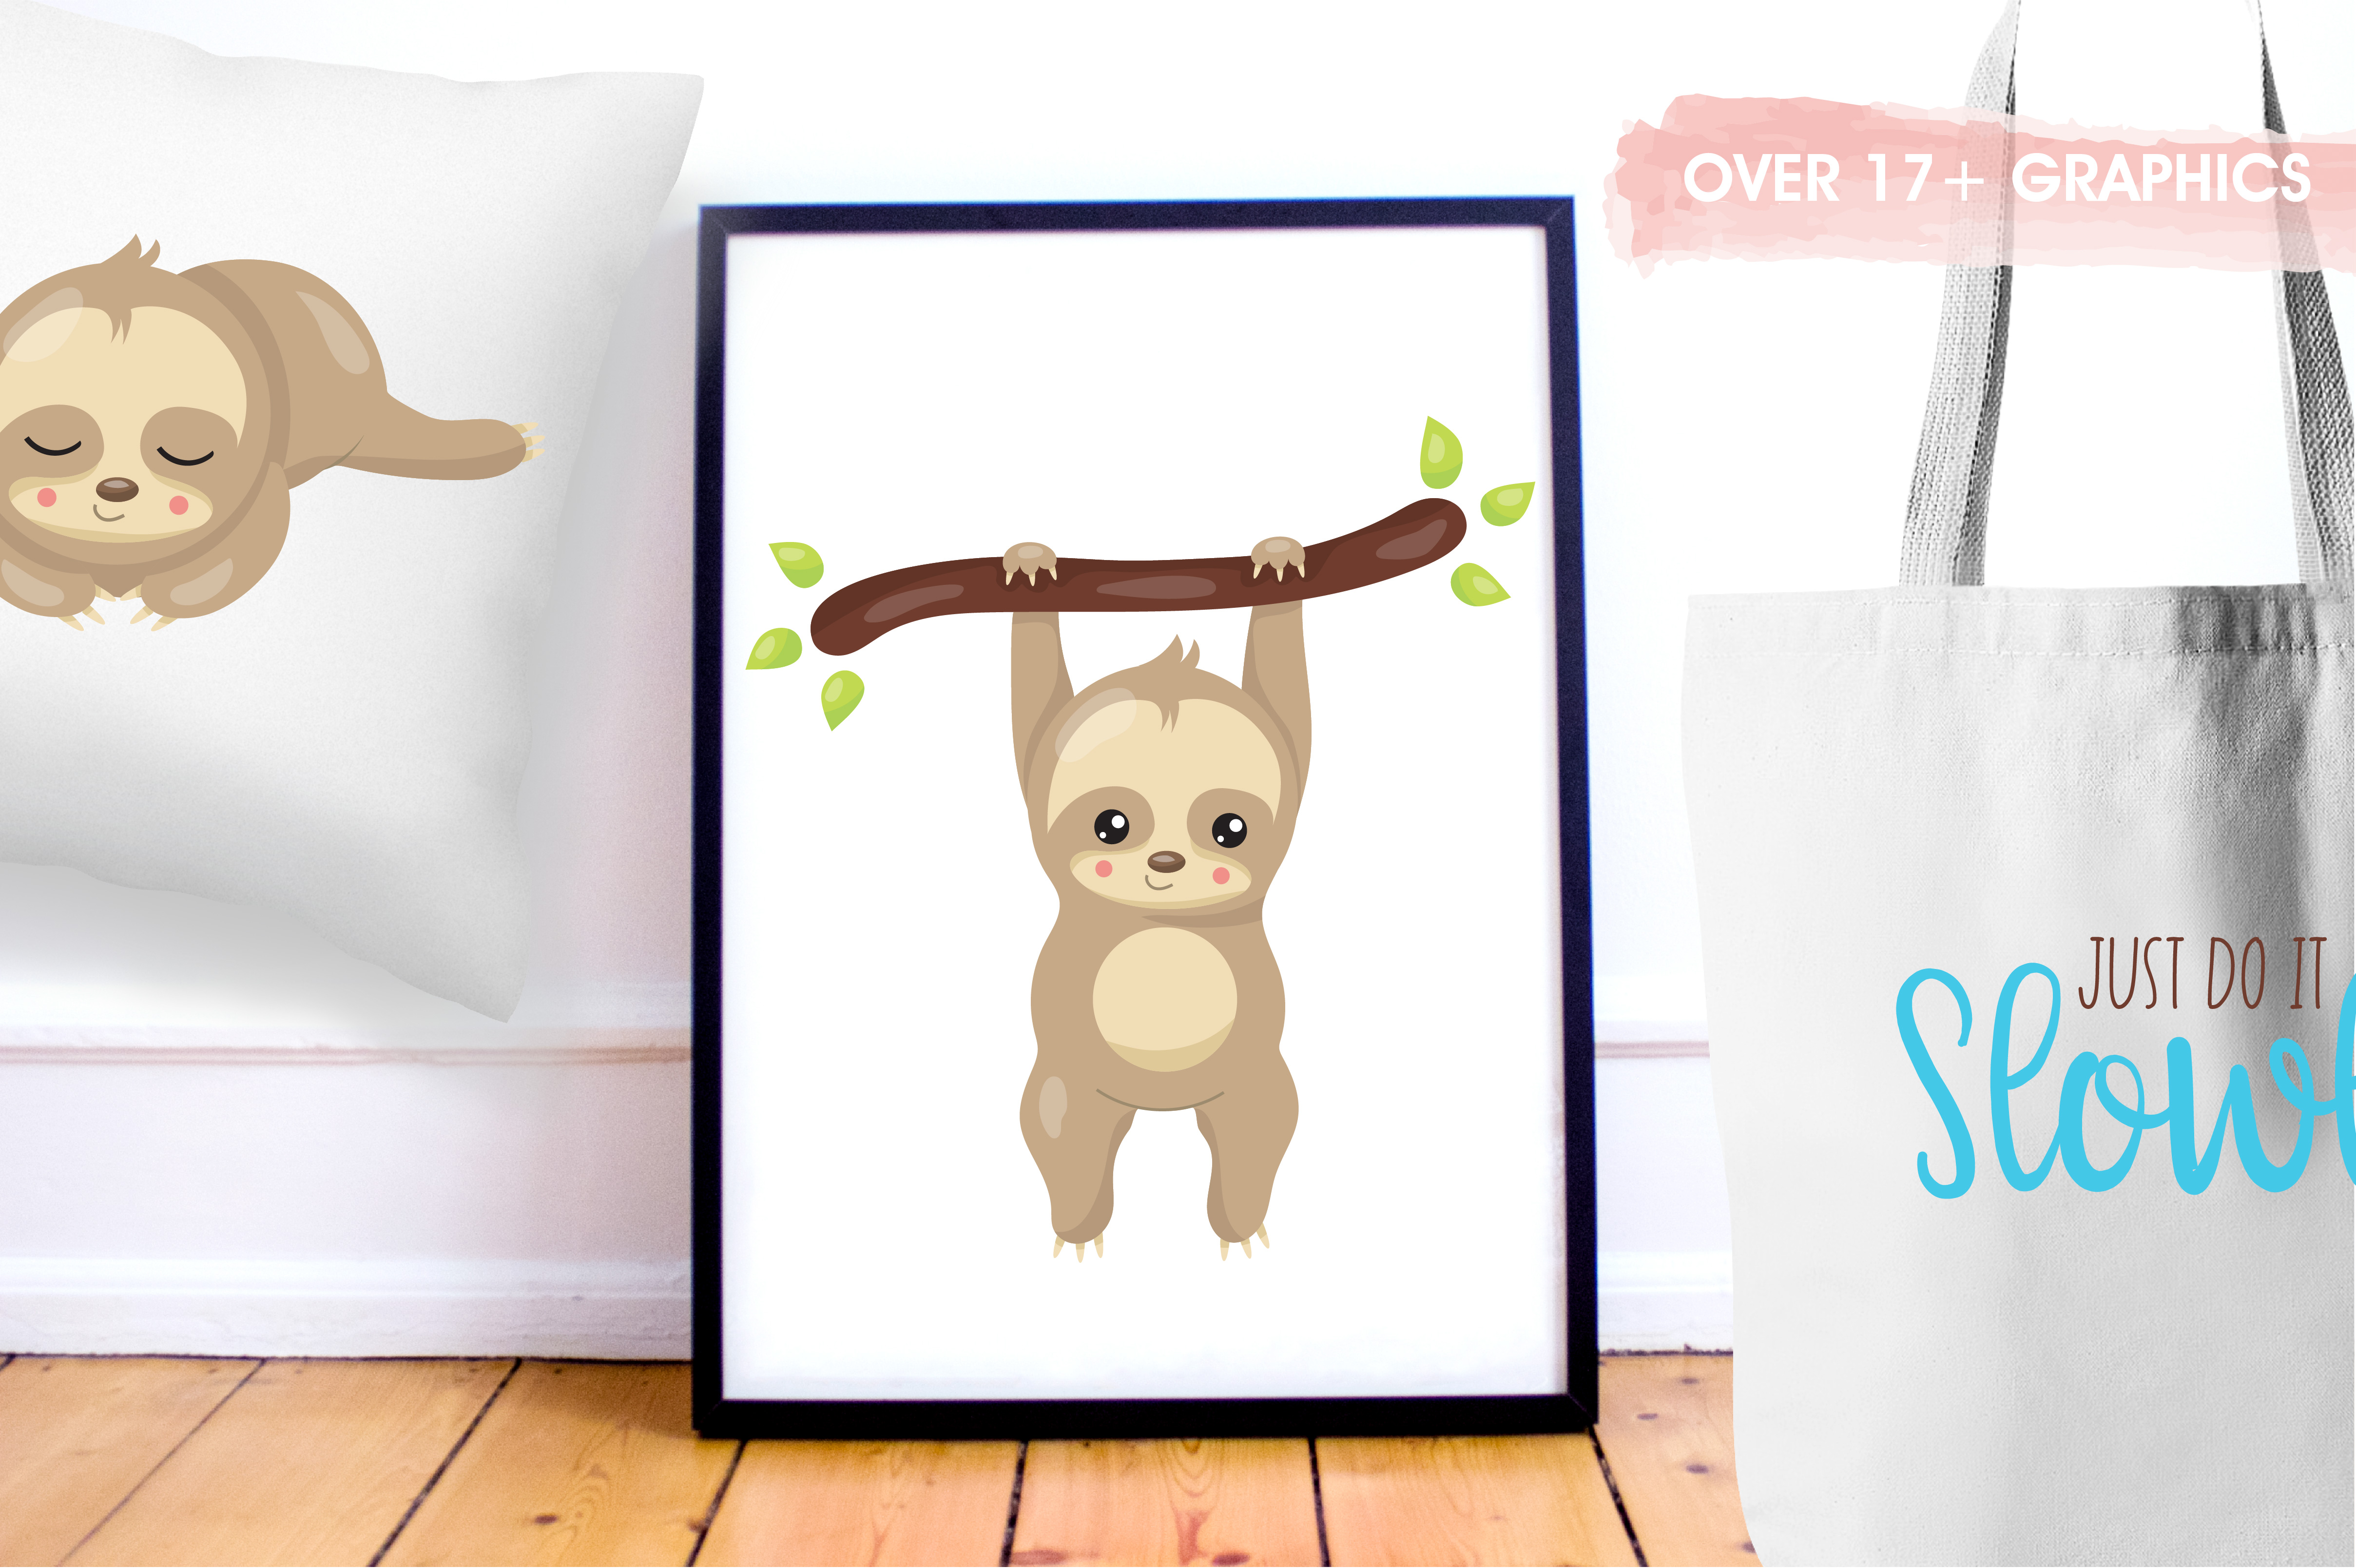 Sleepy sloth graphics and illustrations example image 5